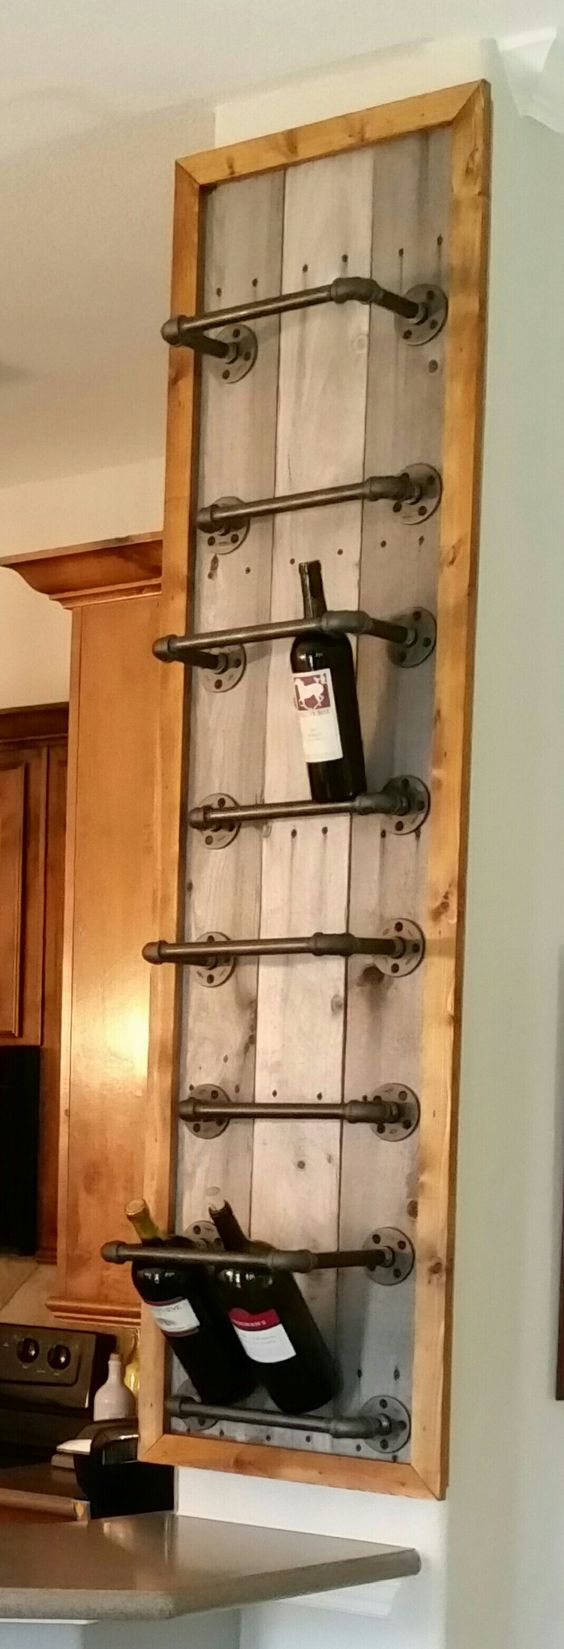 focussummit plans wine diy rack co shelf pipe table storage